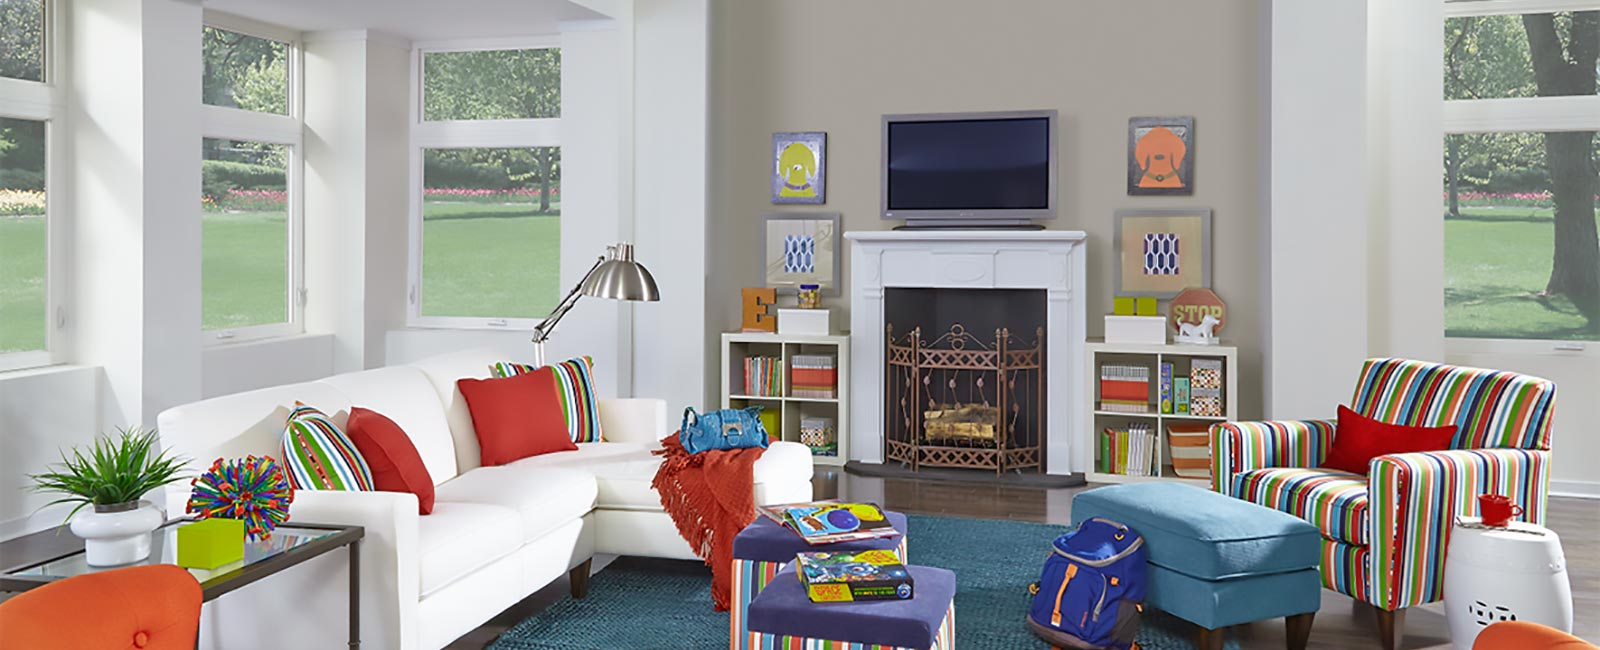 Impact Resistant Windows in Contemporary Family Room